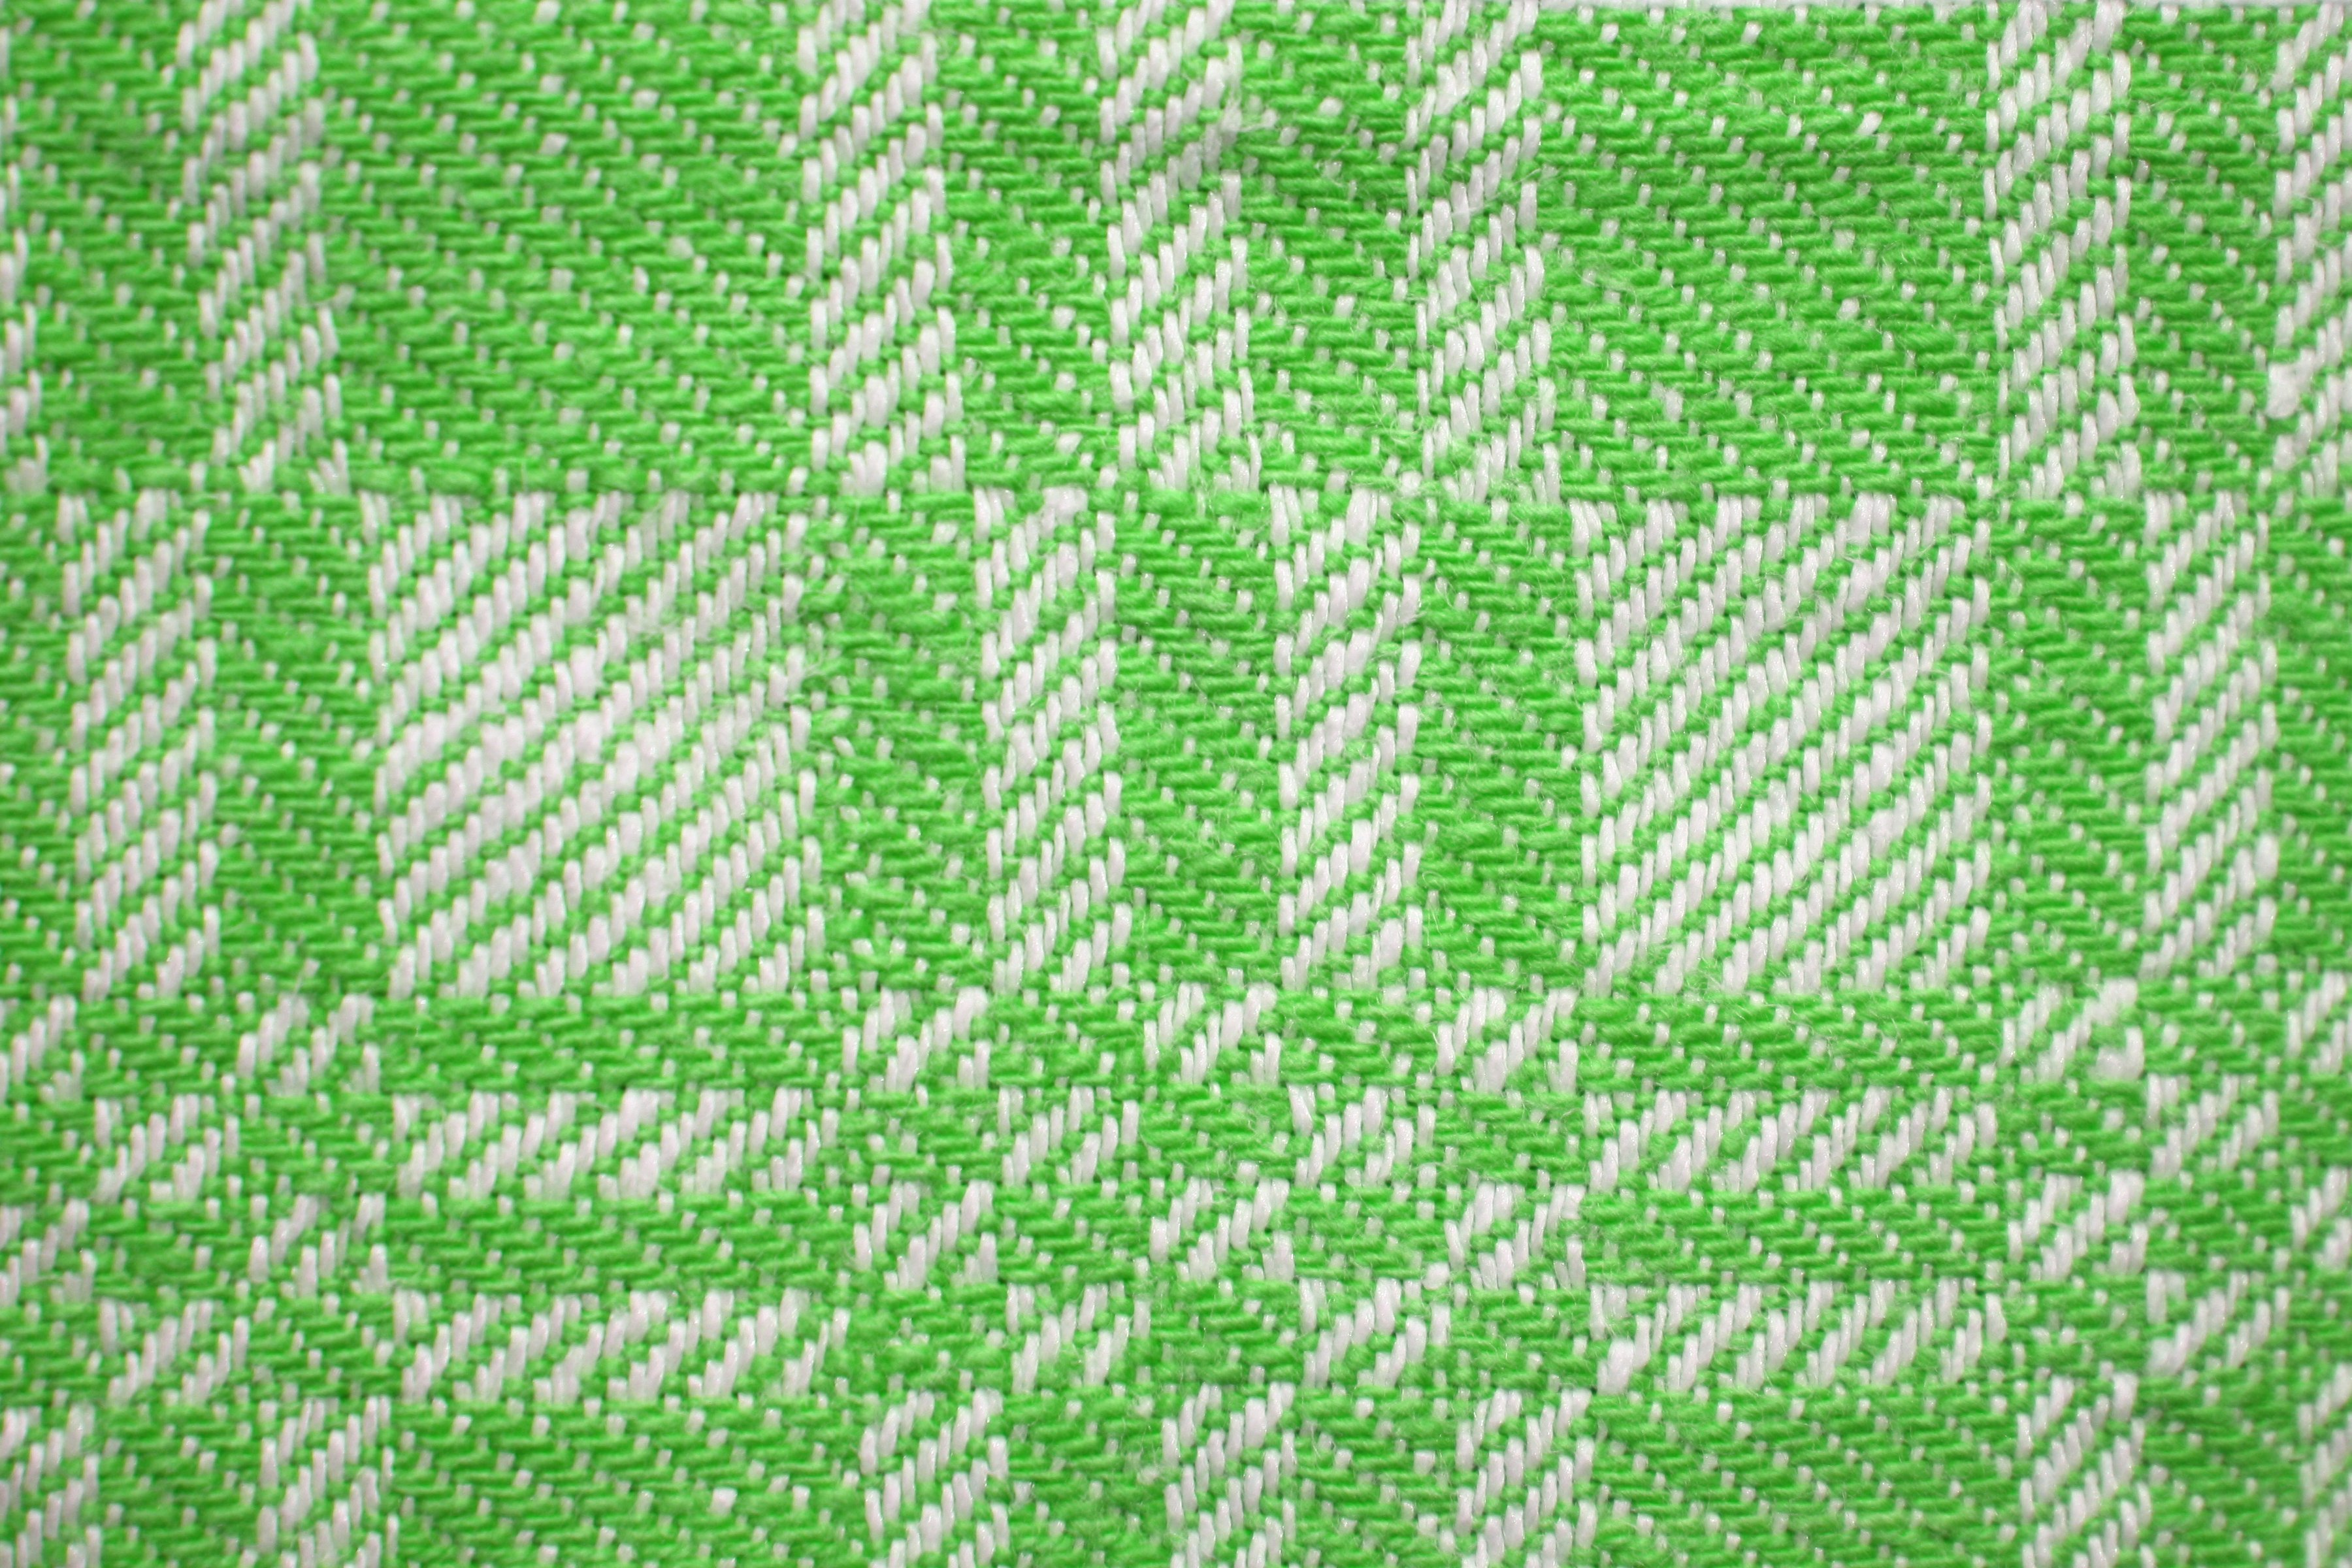 Lime Green And White Woven Fabric Texture With Squares